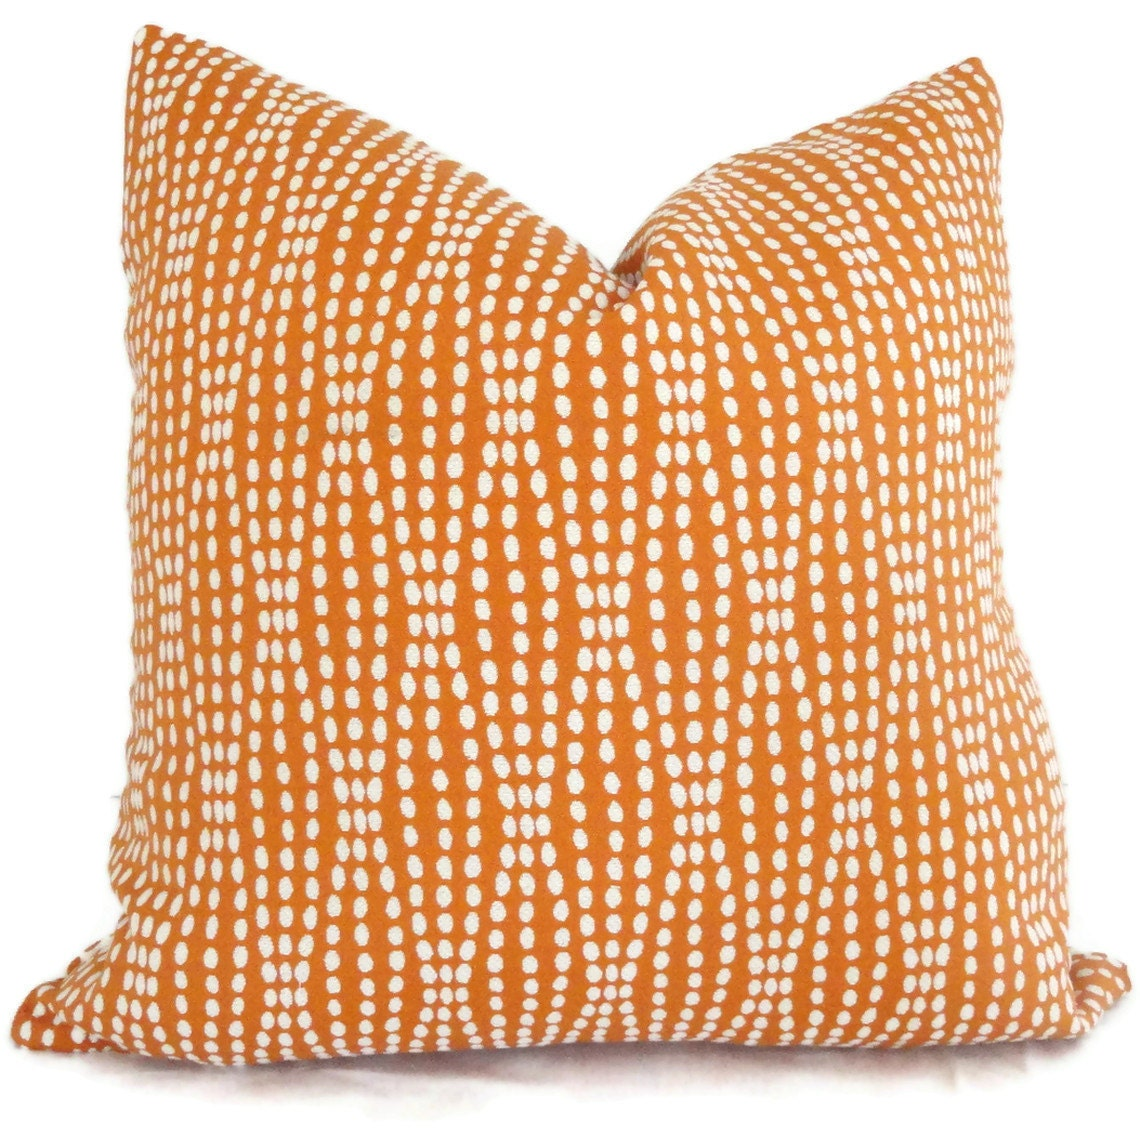 Decorative Pillows And Throws : Pillow Cover Orange and White Reversible Dot Decorative